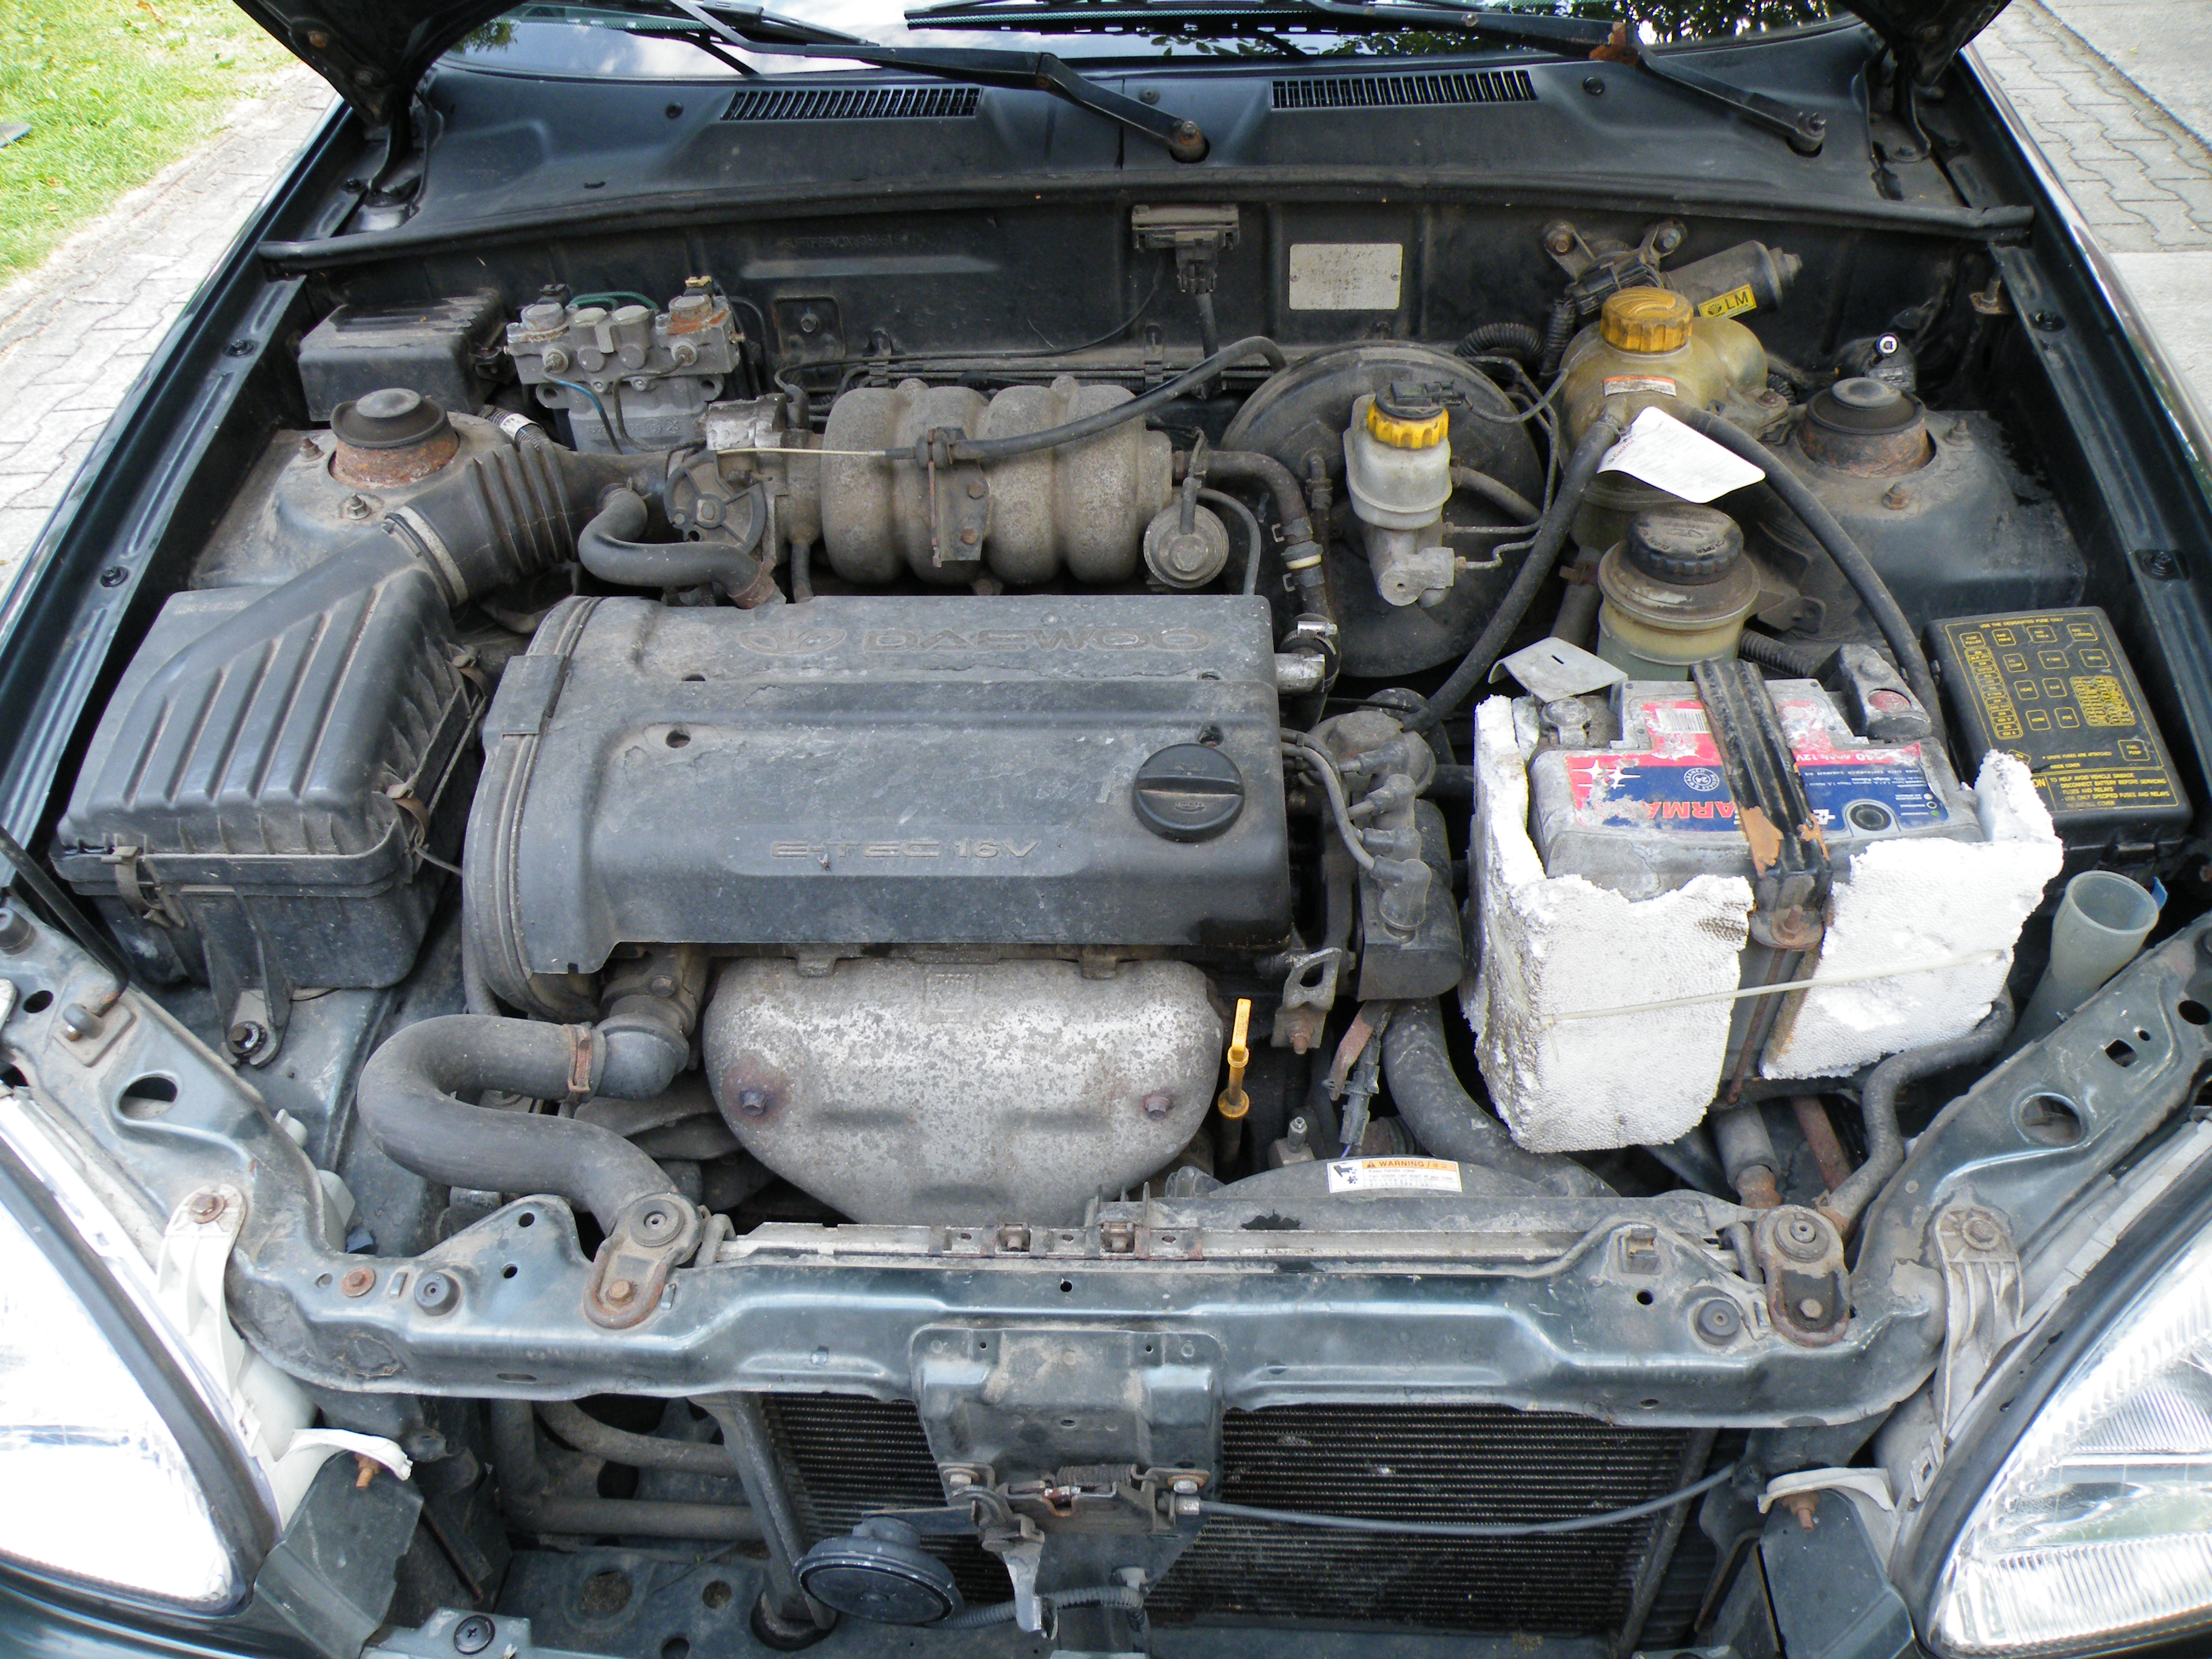 2003 Chevrolet Corsa Sedan Gm 4200 Pictures Information And Chevy Colorado I4 Engine Diagram Models 3